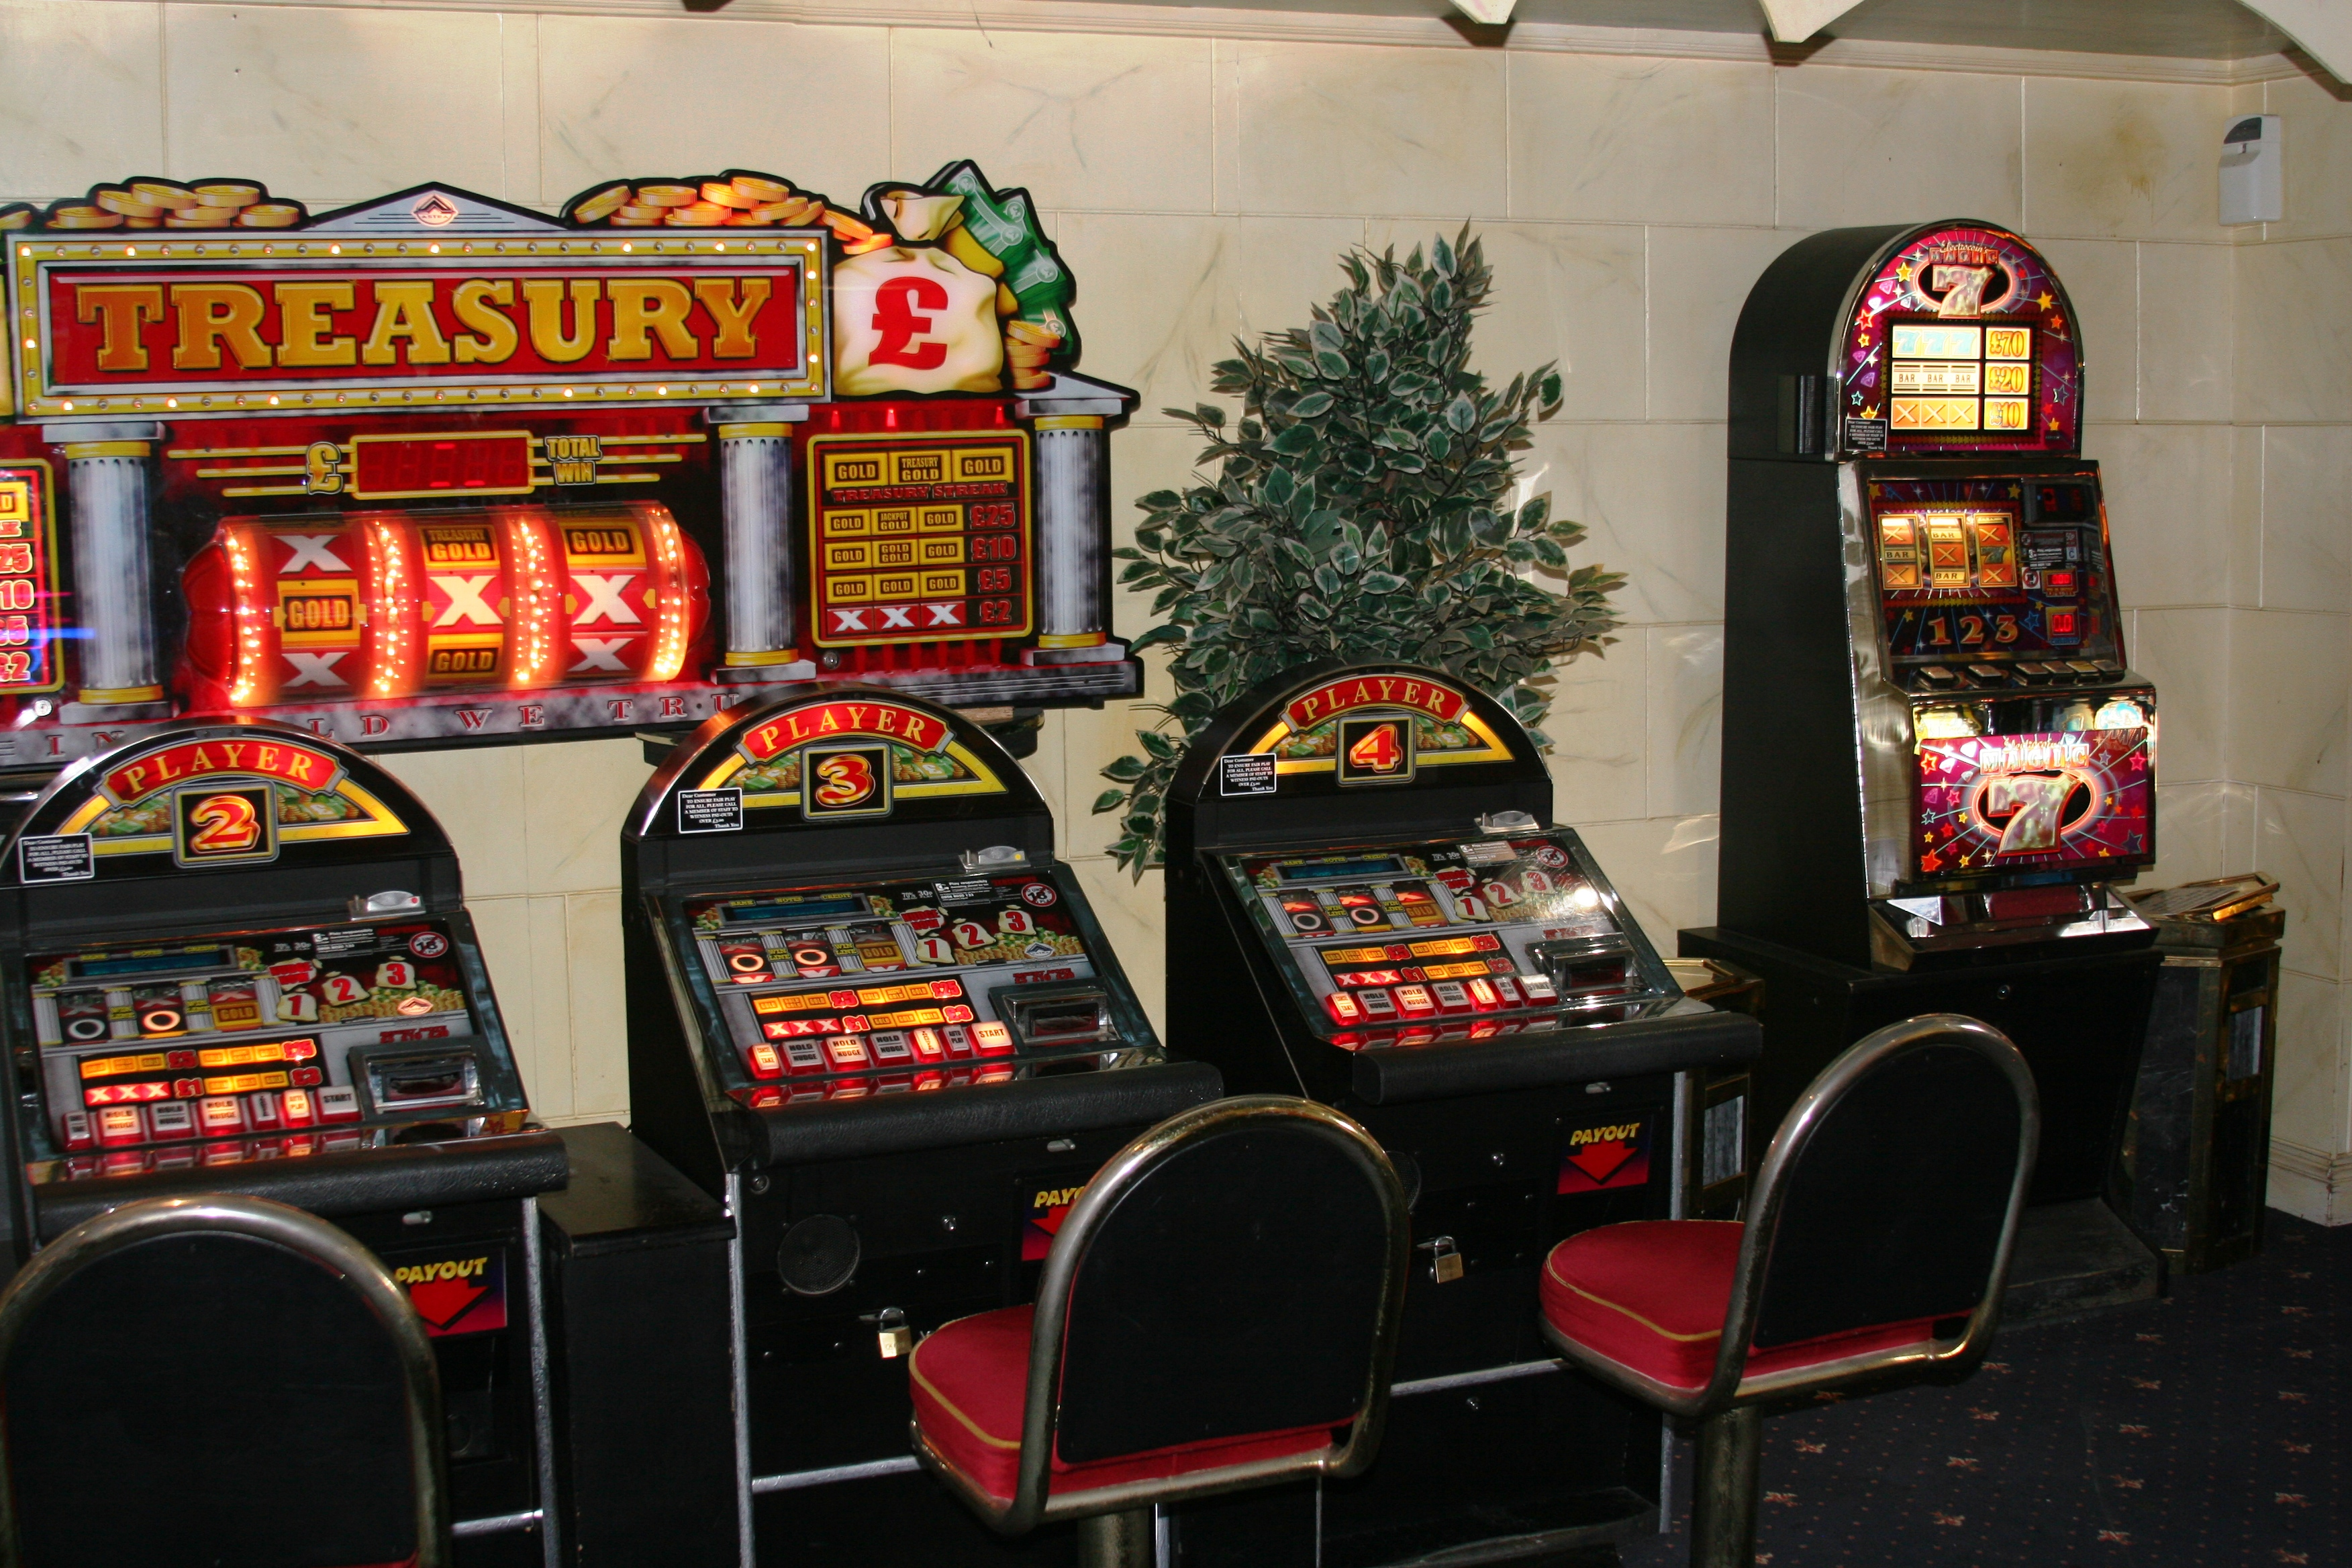 Traditional slot machines